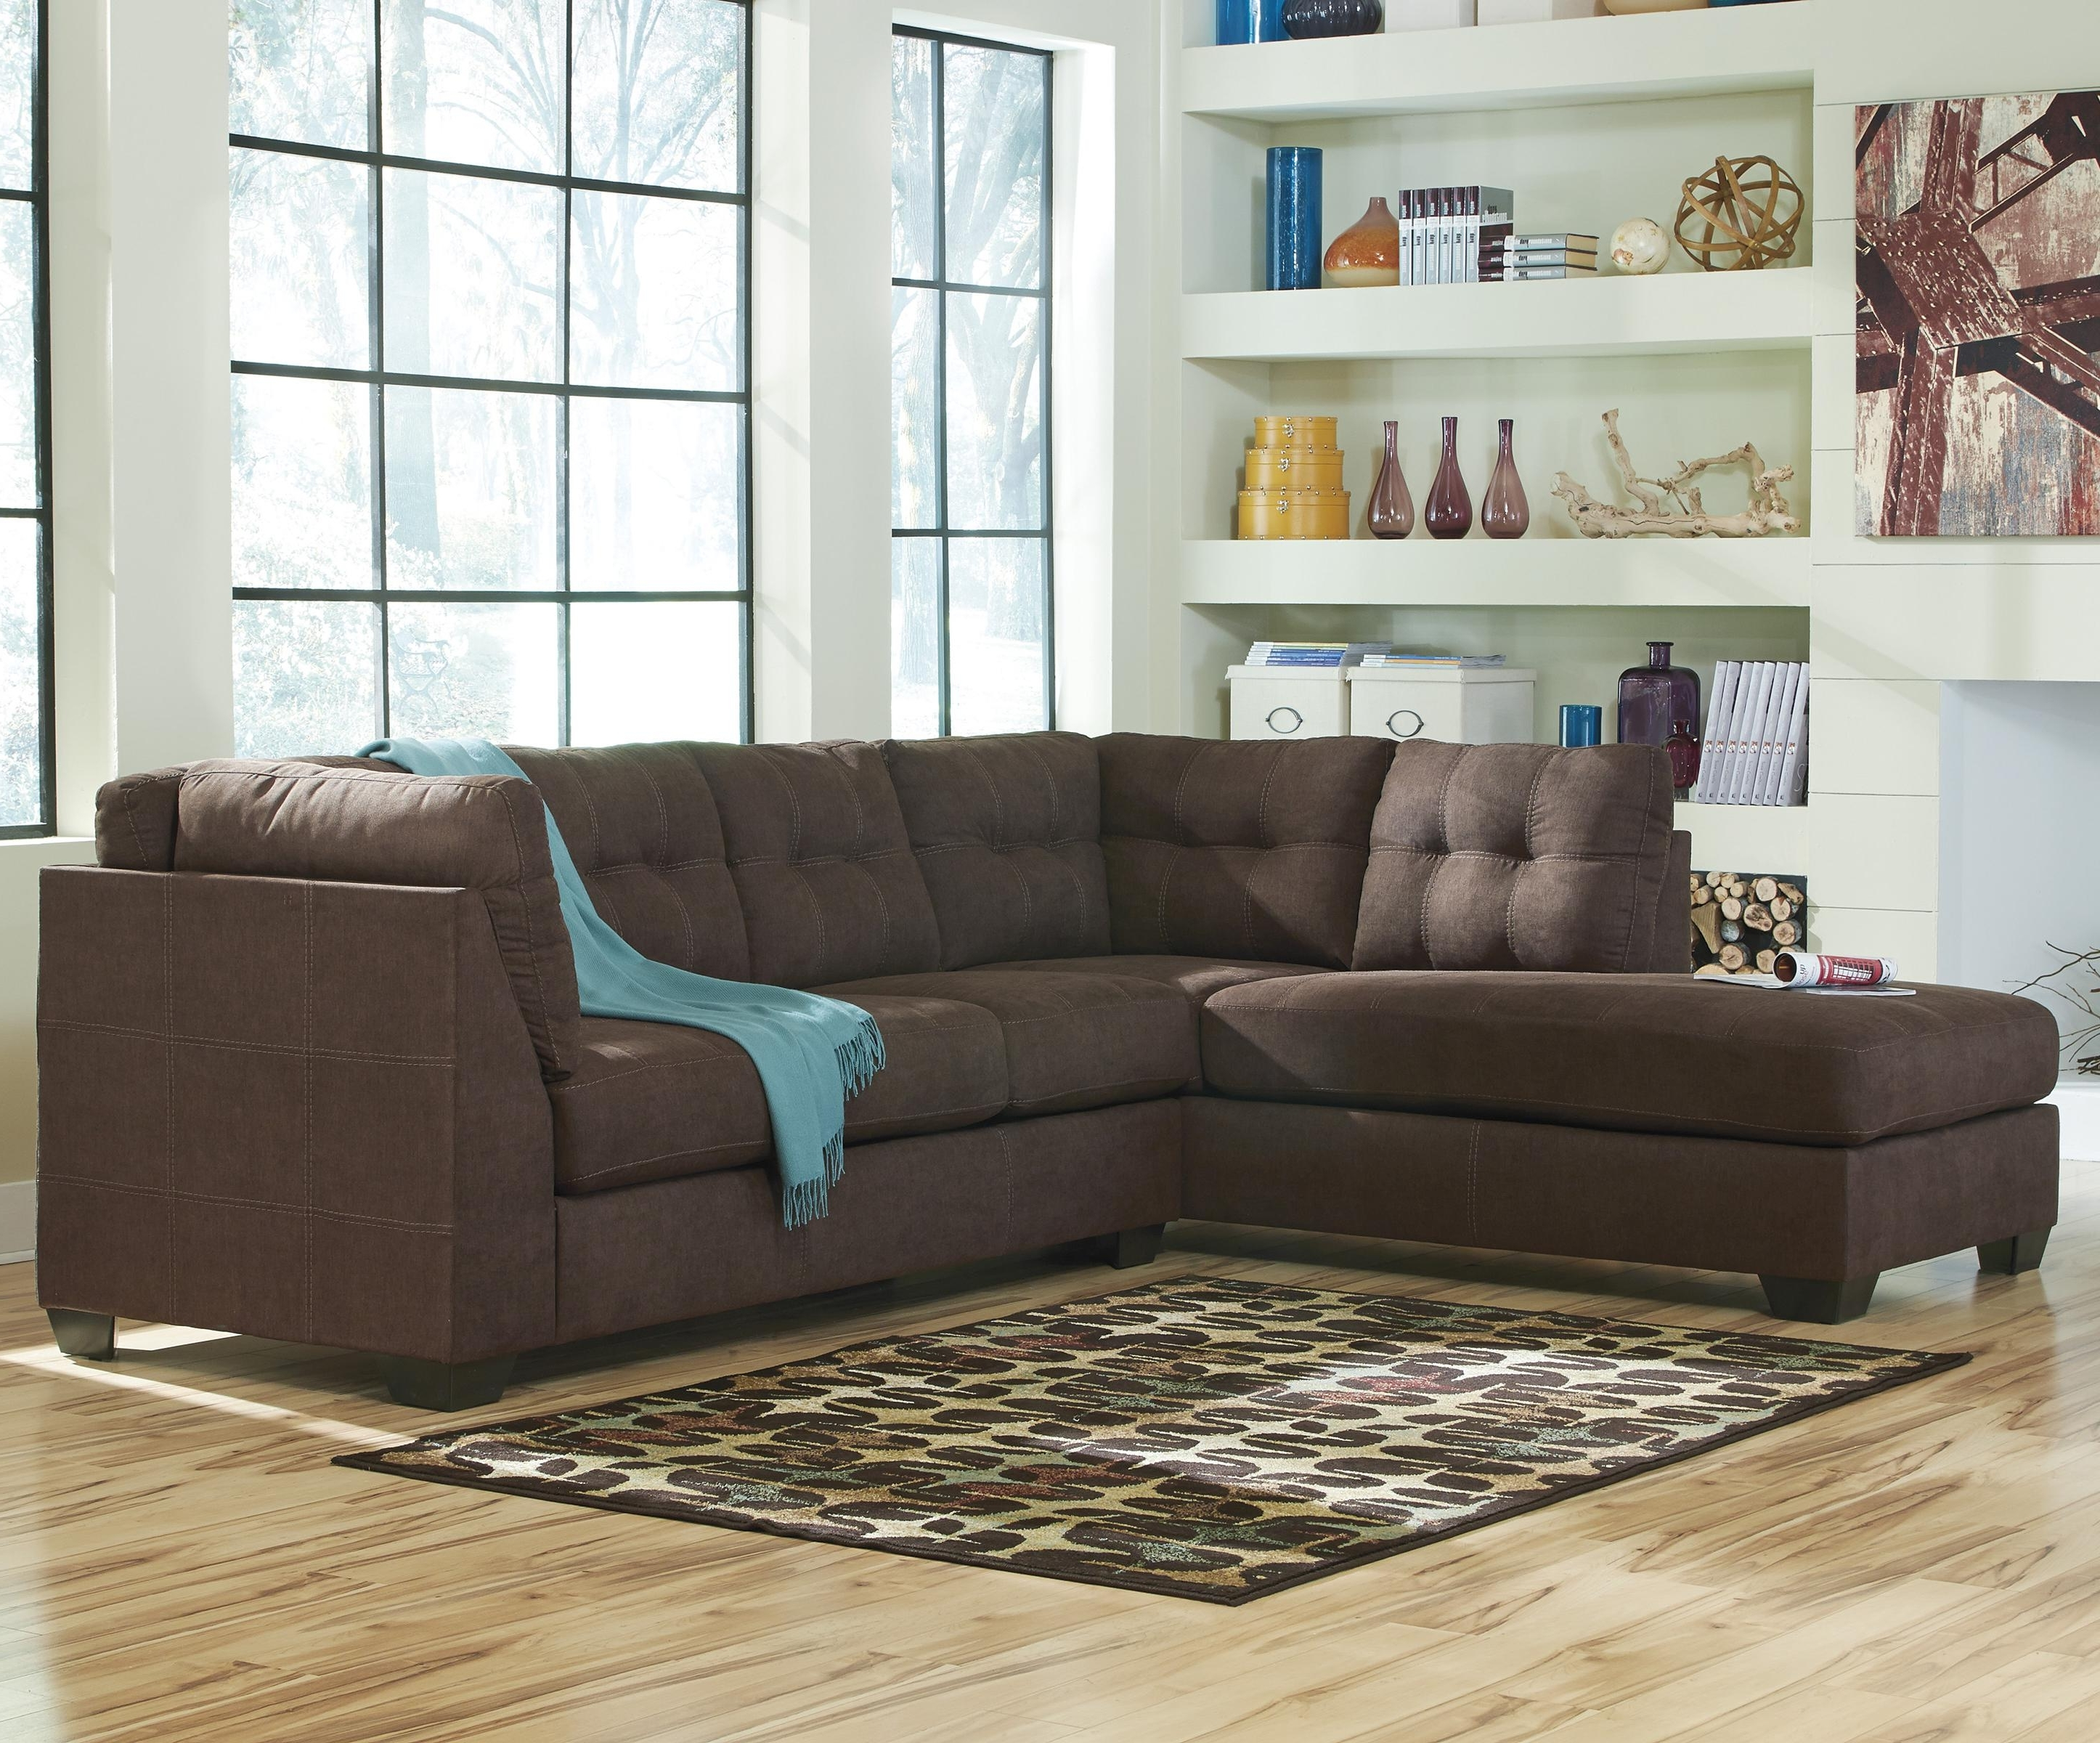 2018 Benchcraft Maier – Walnut 2 Piece Sectional With Left Chaise Intended For Left Chaise Sectionals (View 2 of 15)